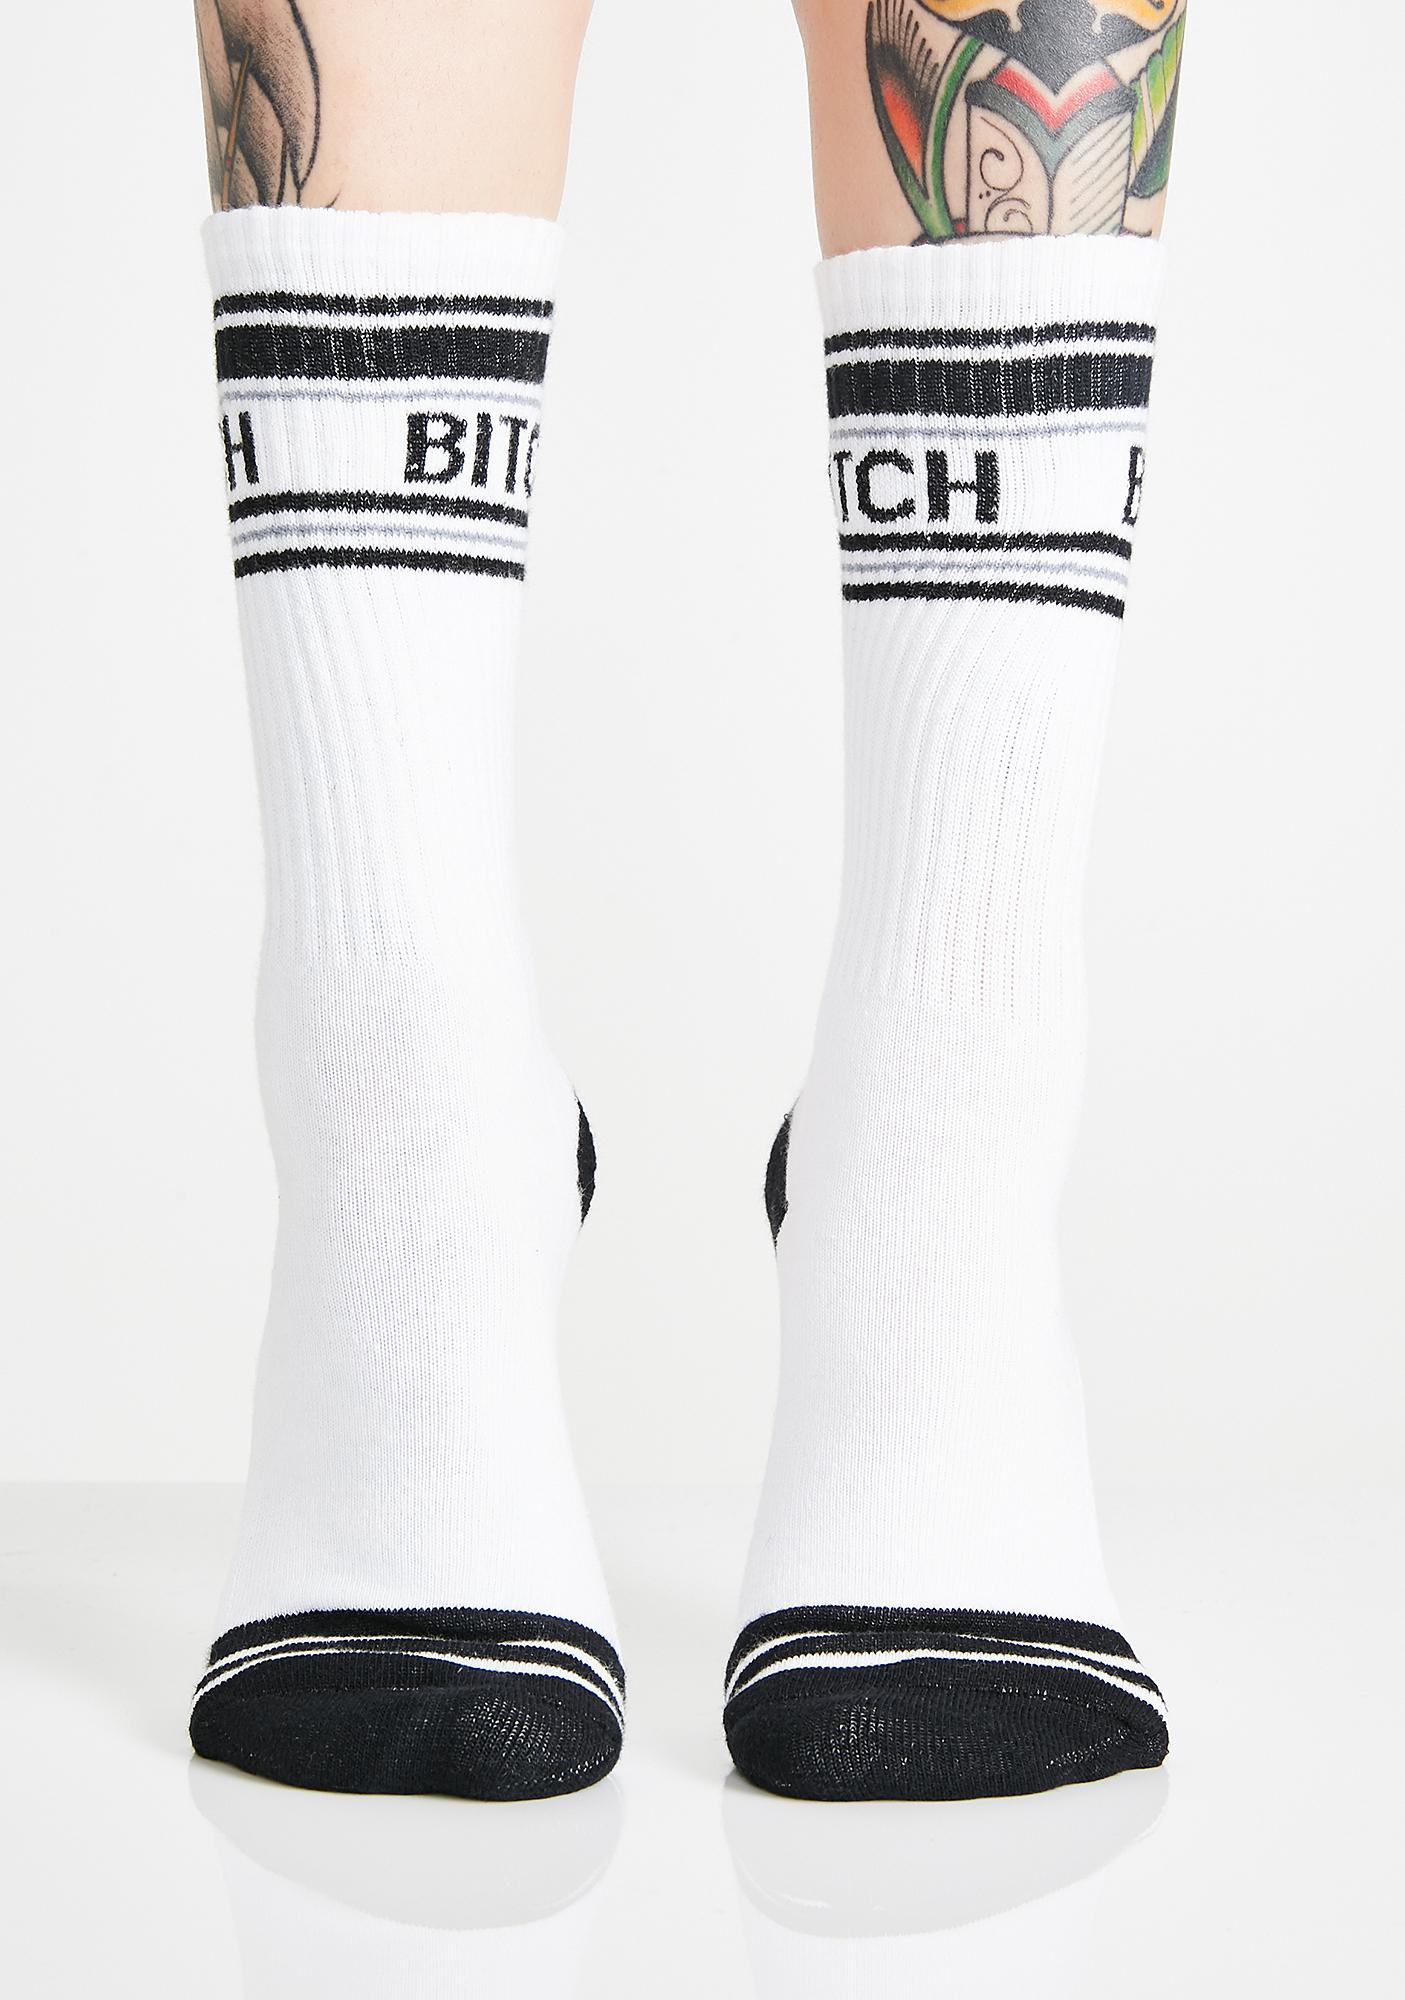 Gumball Poodle Bitch Gym Crew Socks